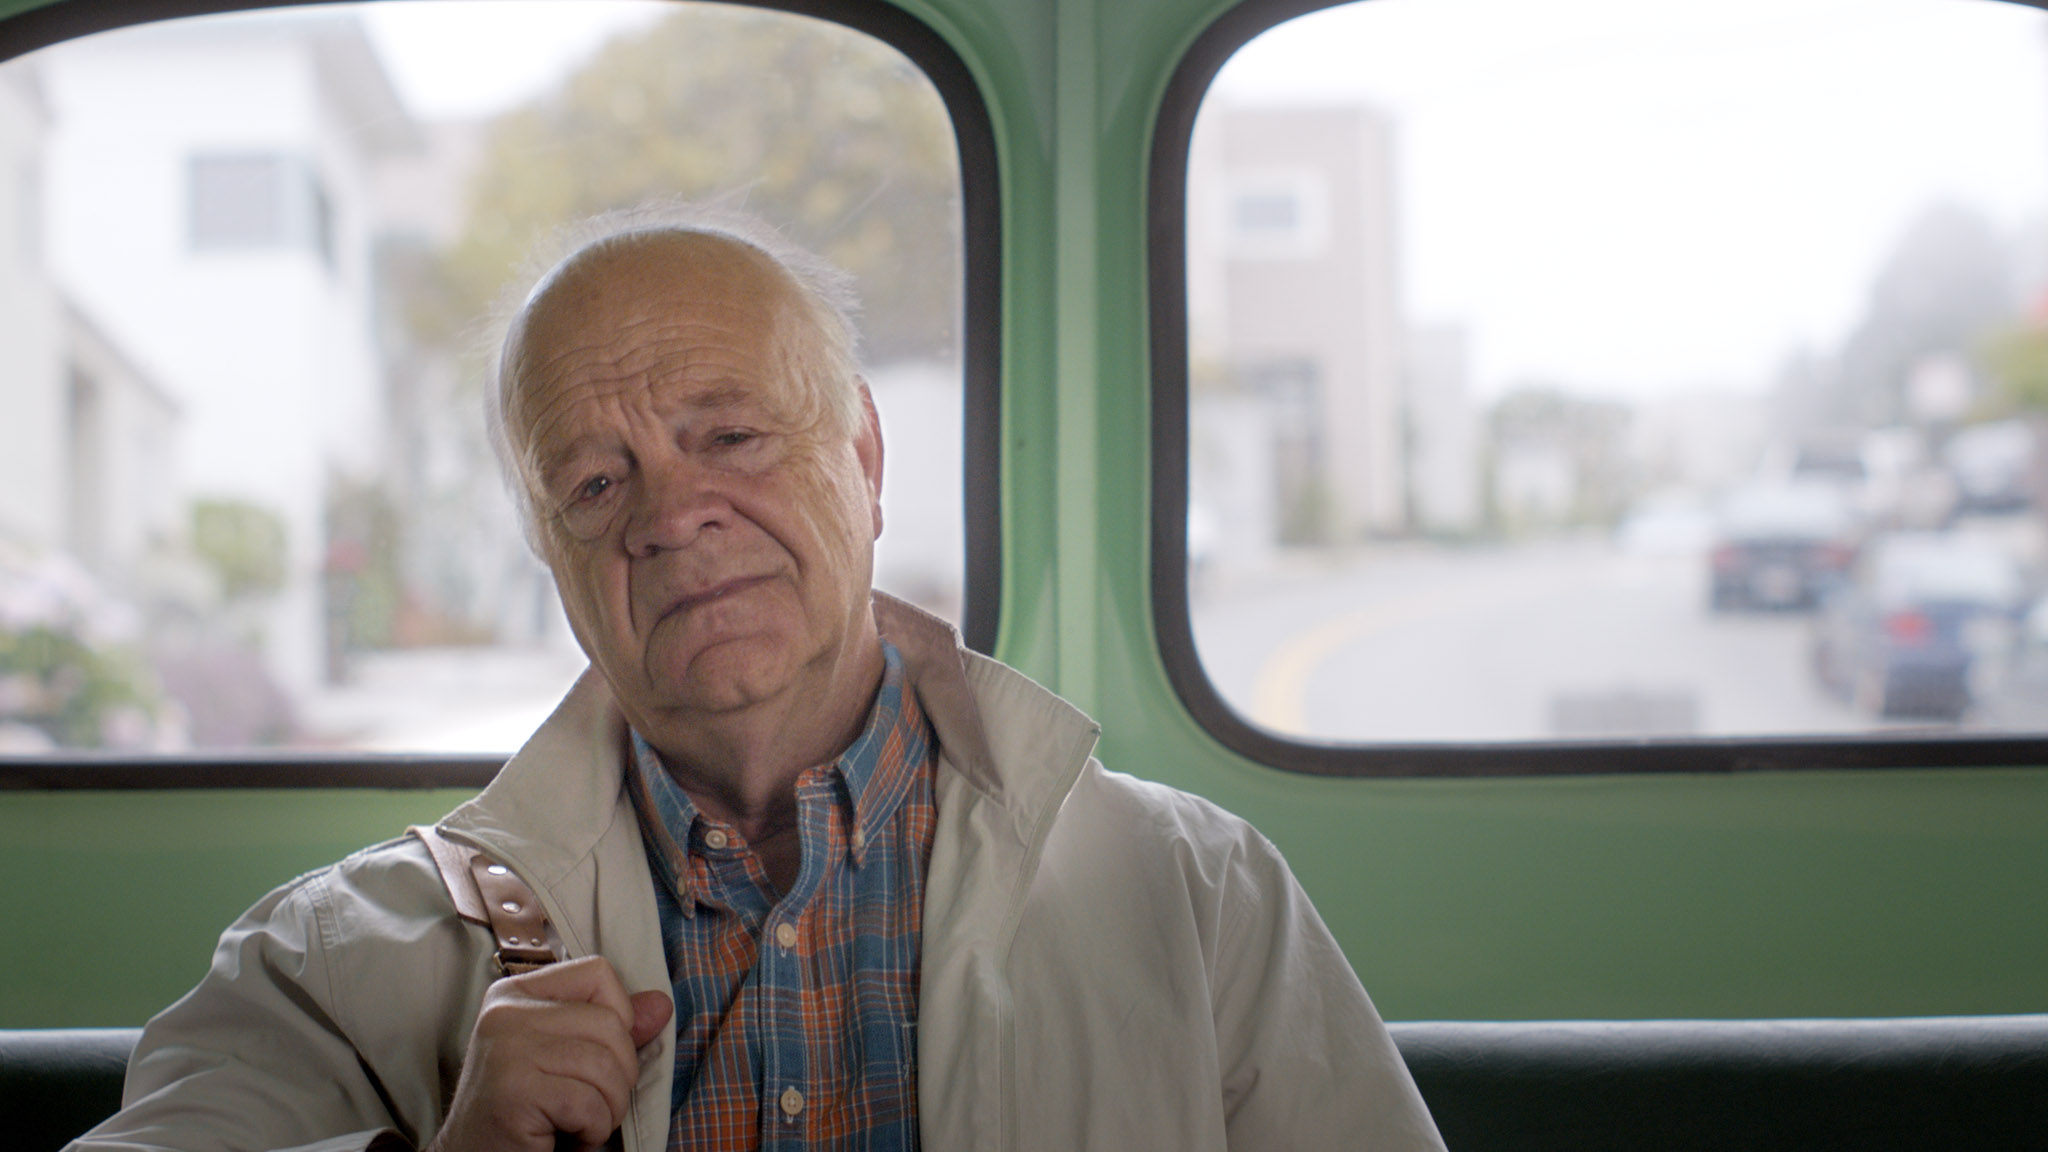 Joel on a bus. Youth, a short film coming in 2016. Starring Jessica Stroup and George Maguire, directed by Brett Marty. A sci-fi film about growing old in a world of perpetual youth.